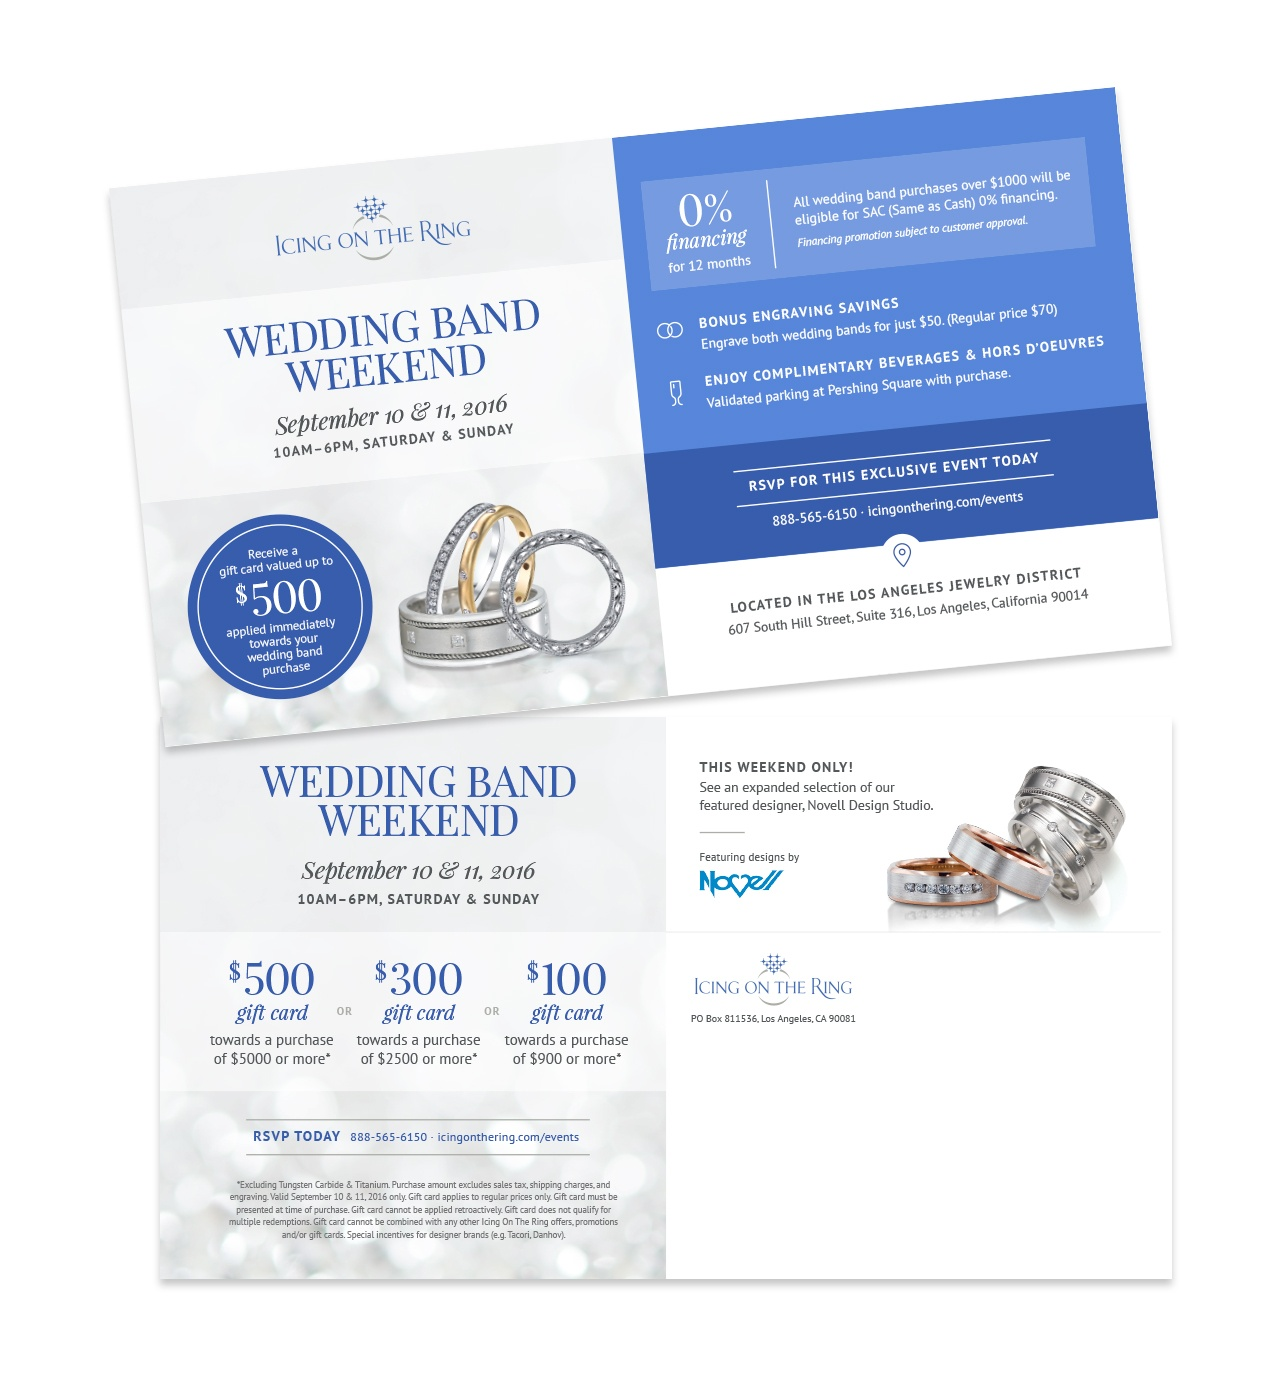 Icing On The Ring Direct Mail Marketing Design #2 by Salted Stone